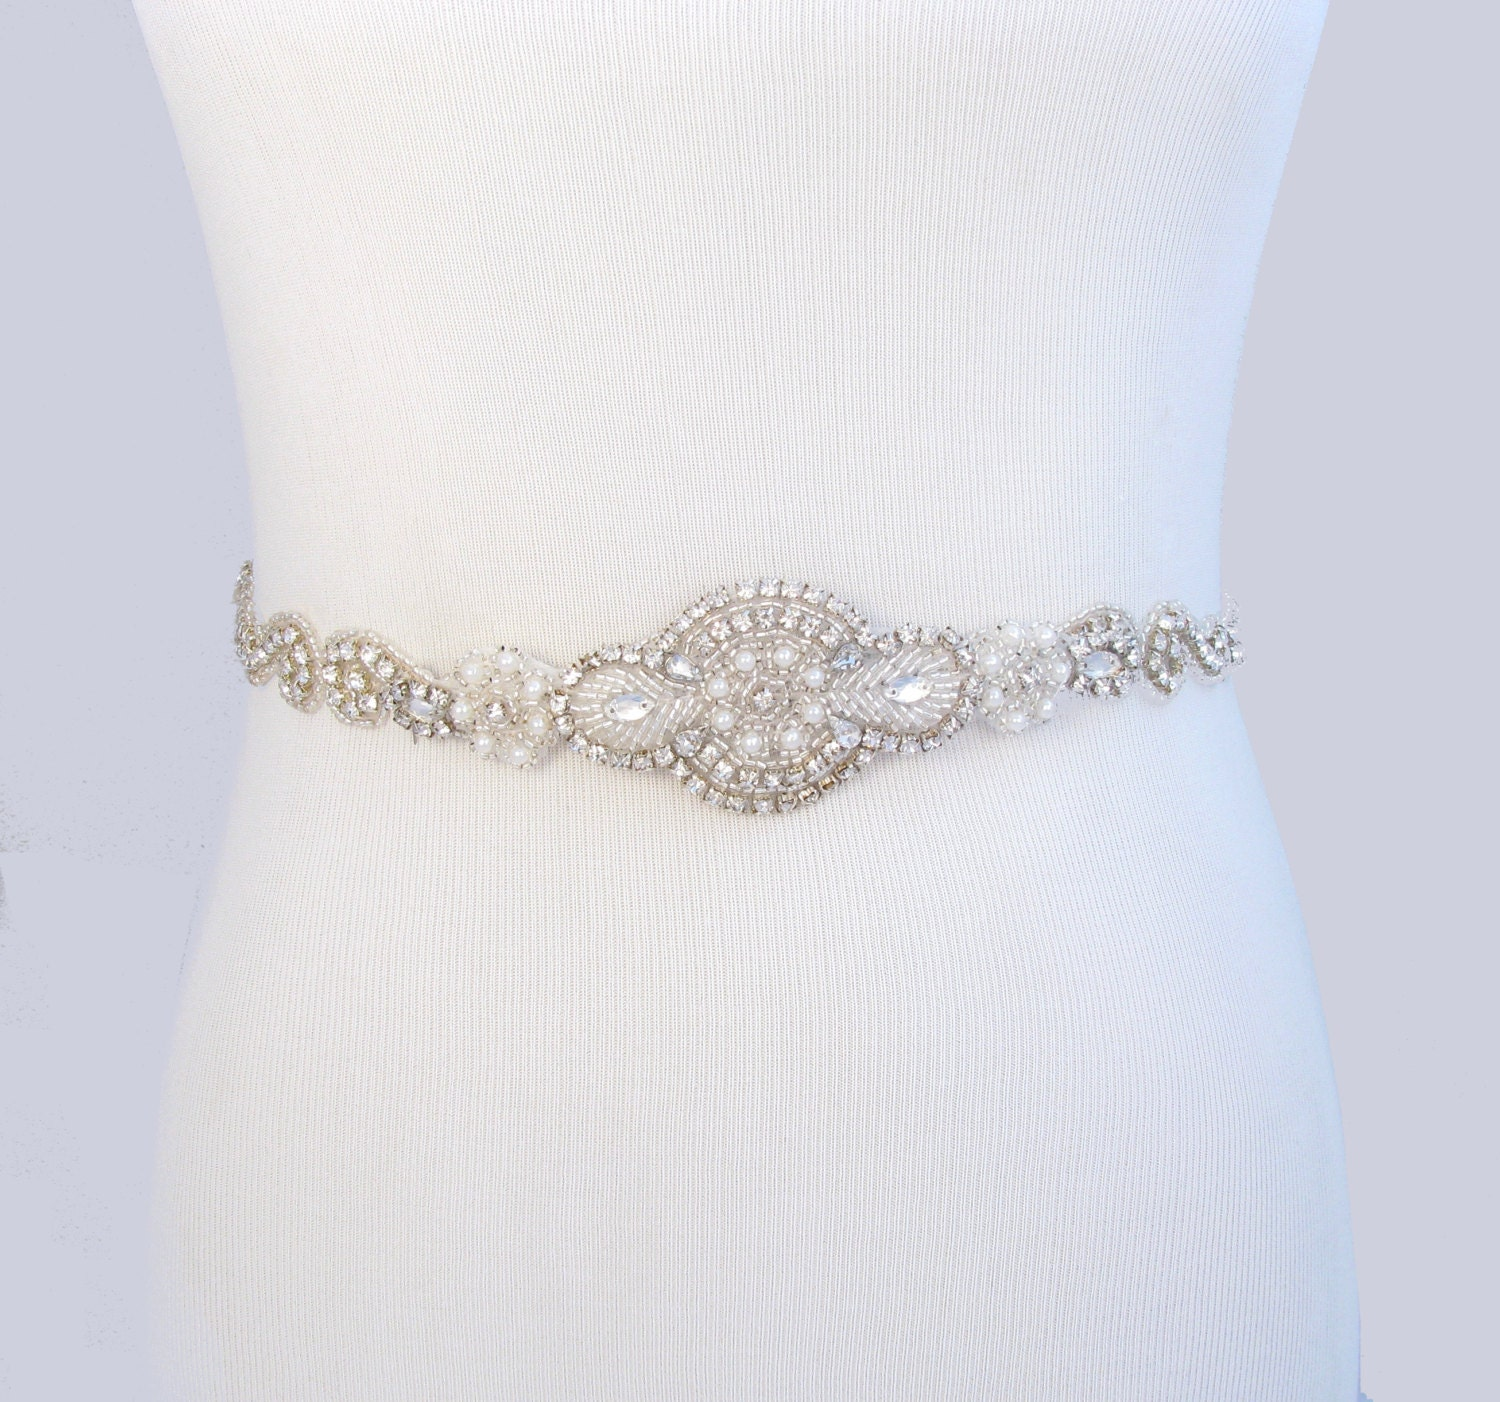 Crystal rhinestone wedding dress sash satin ribbon bridal for Wedding dress sash with rhinestones